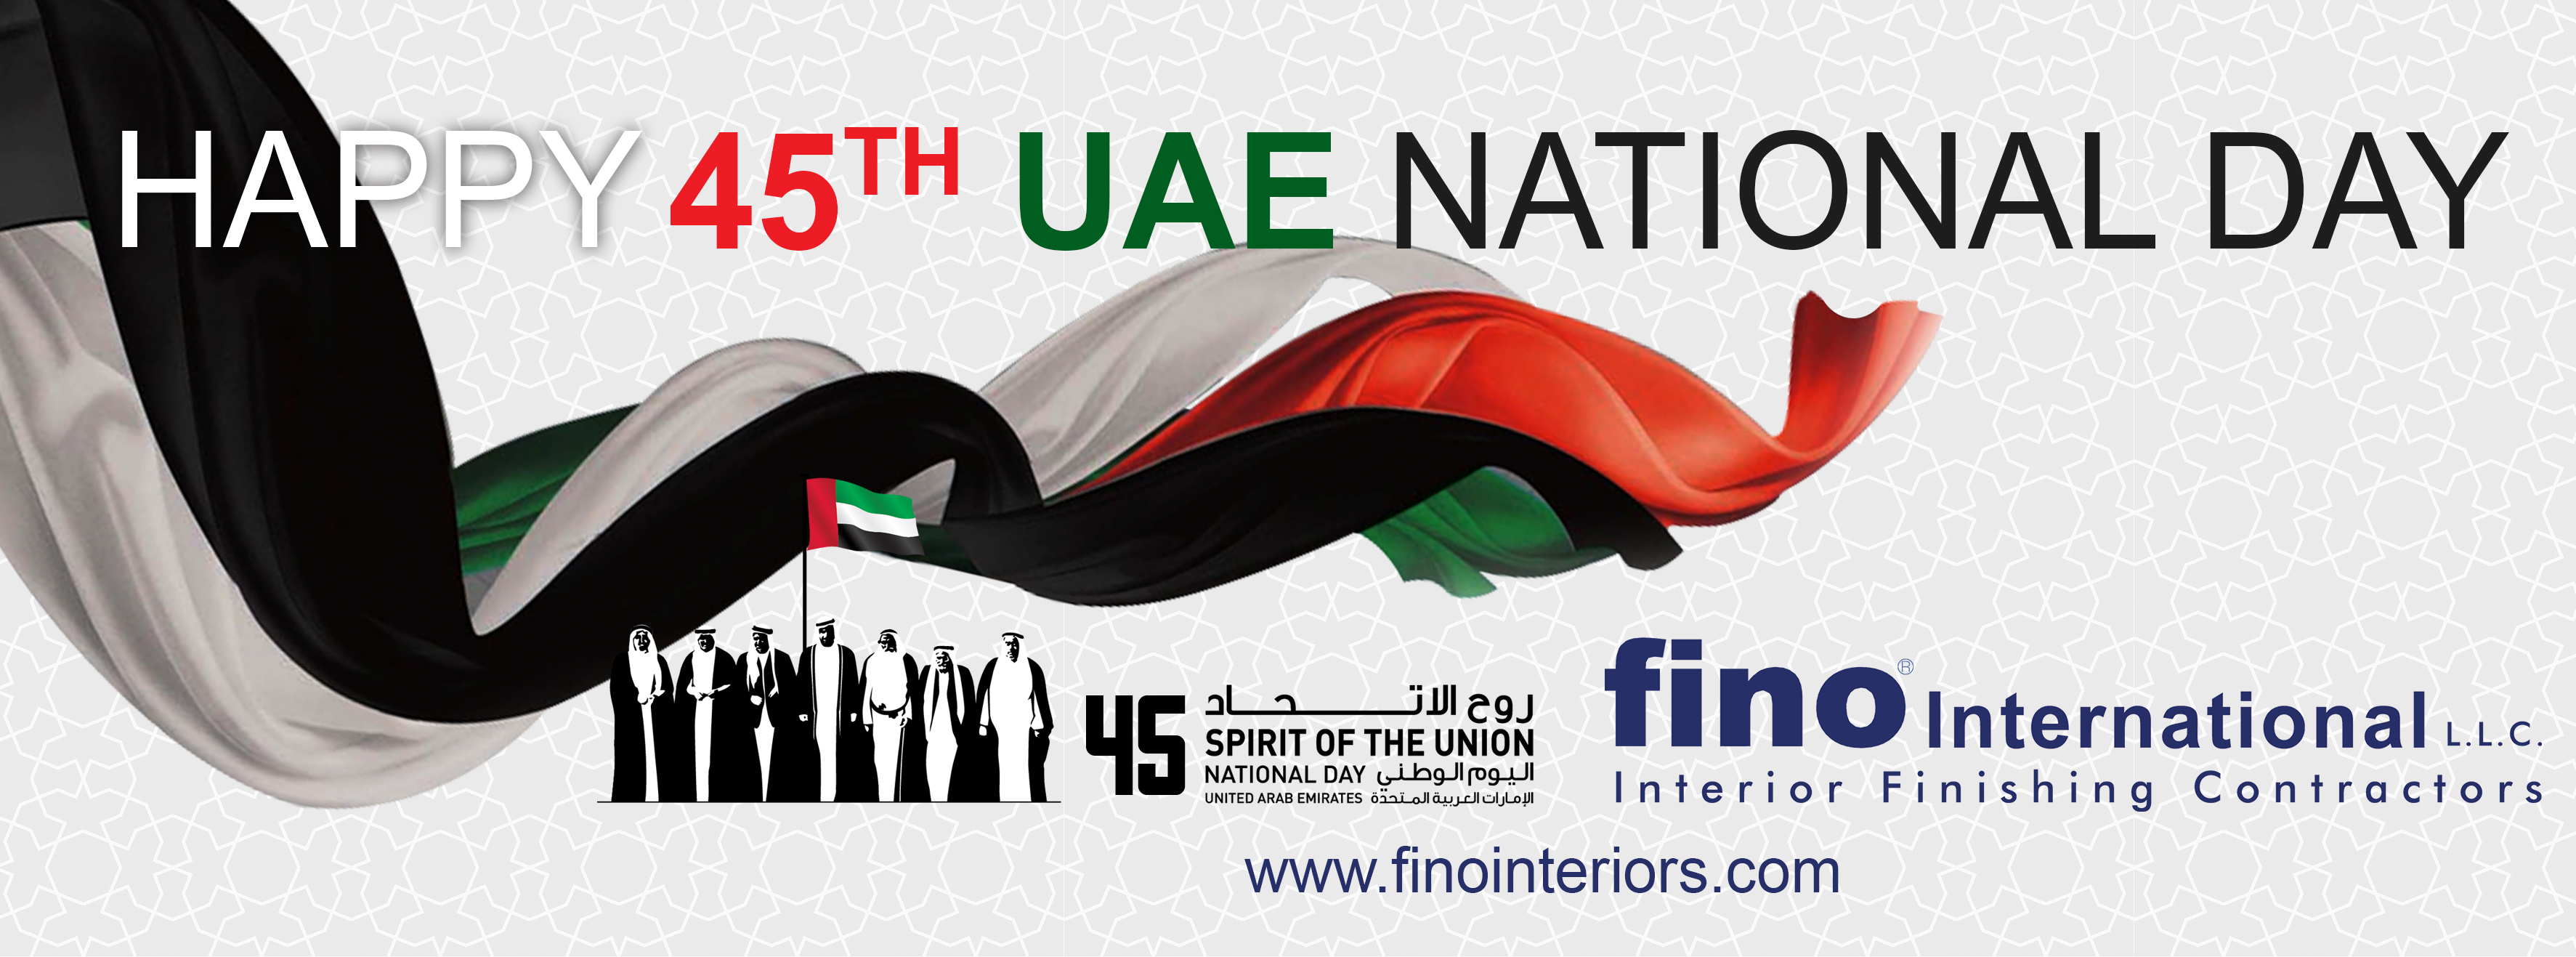 facebook- FINO UAE 45th NATIONAL DAY.jpg